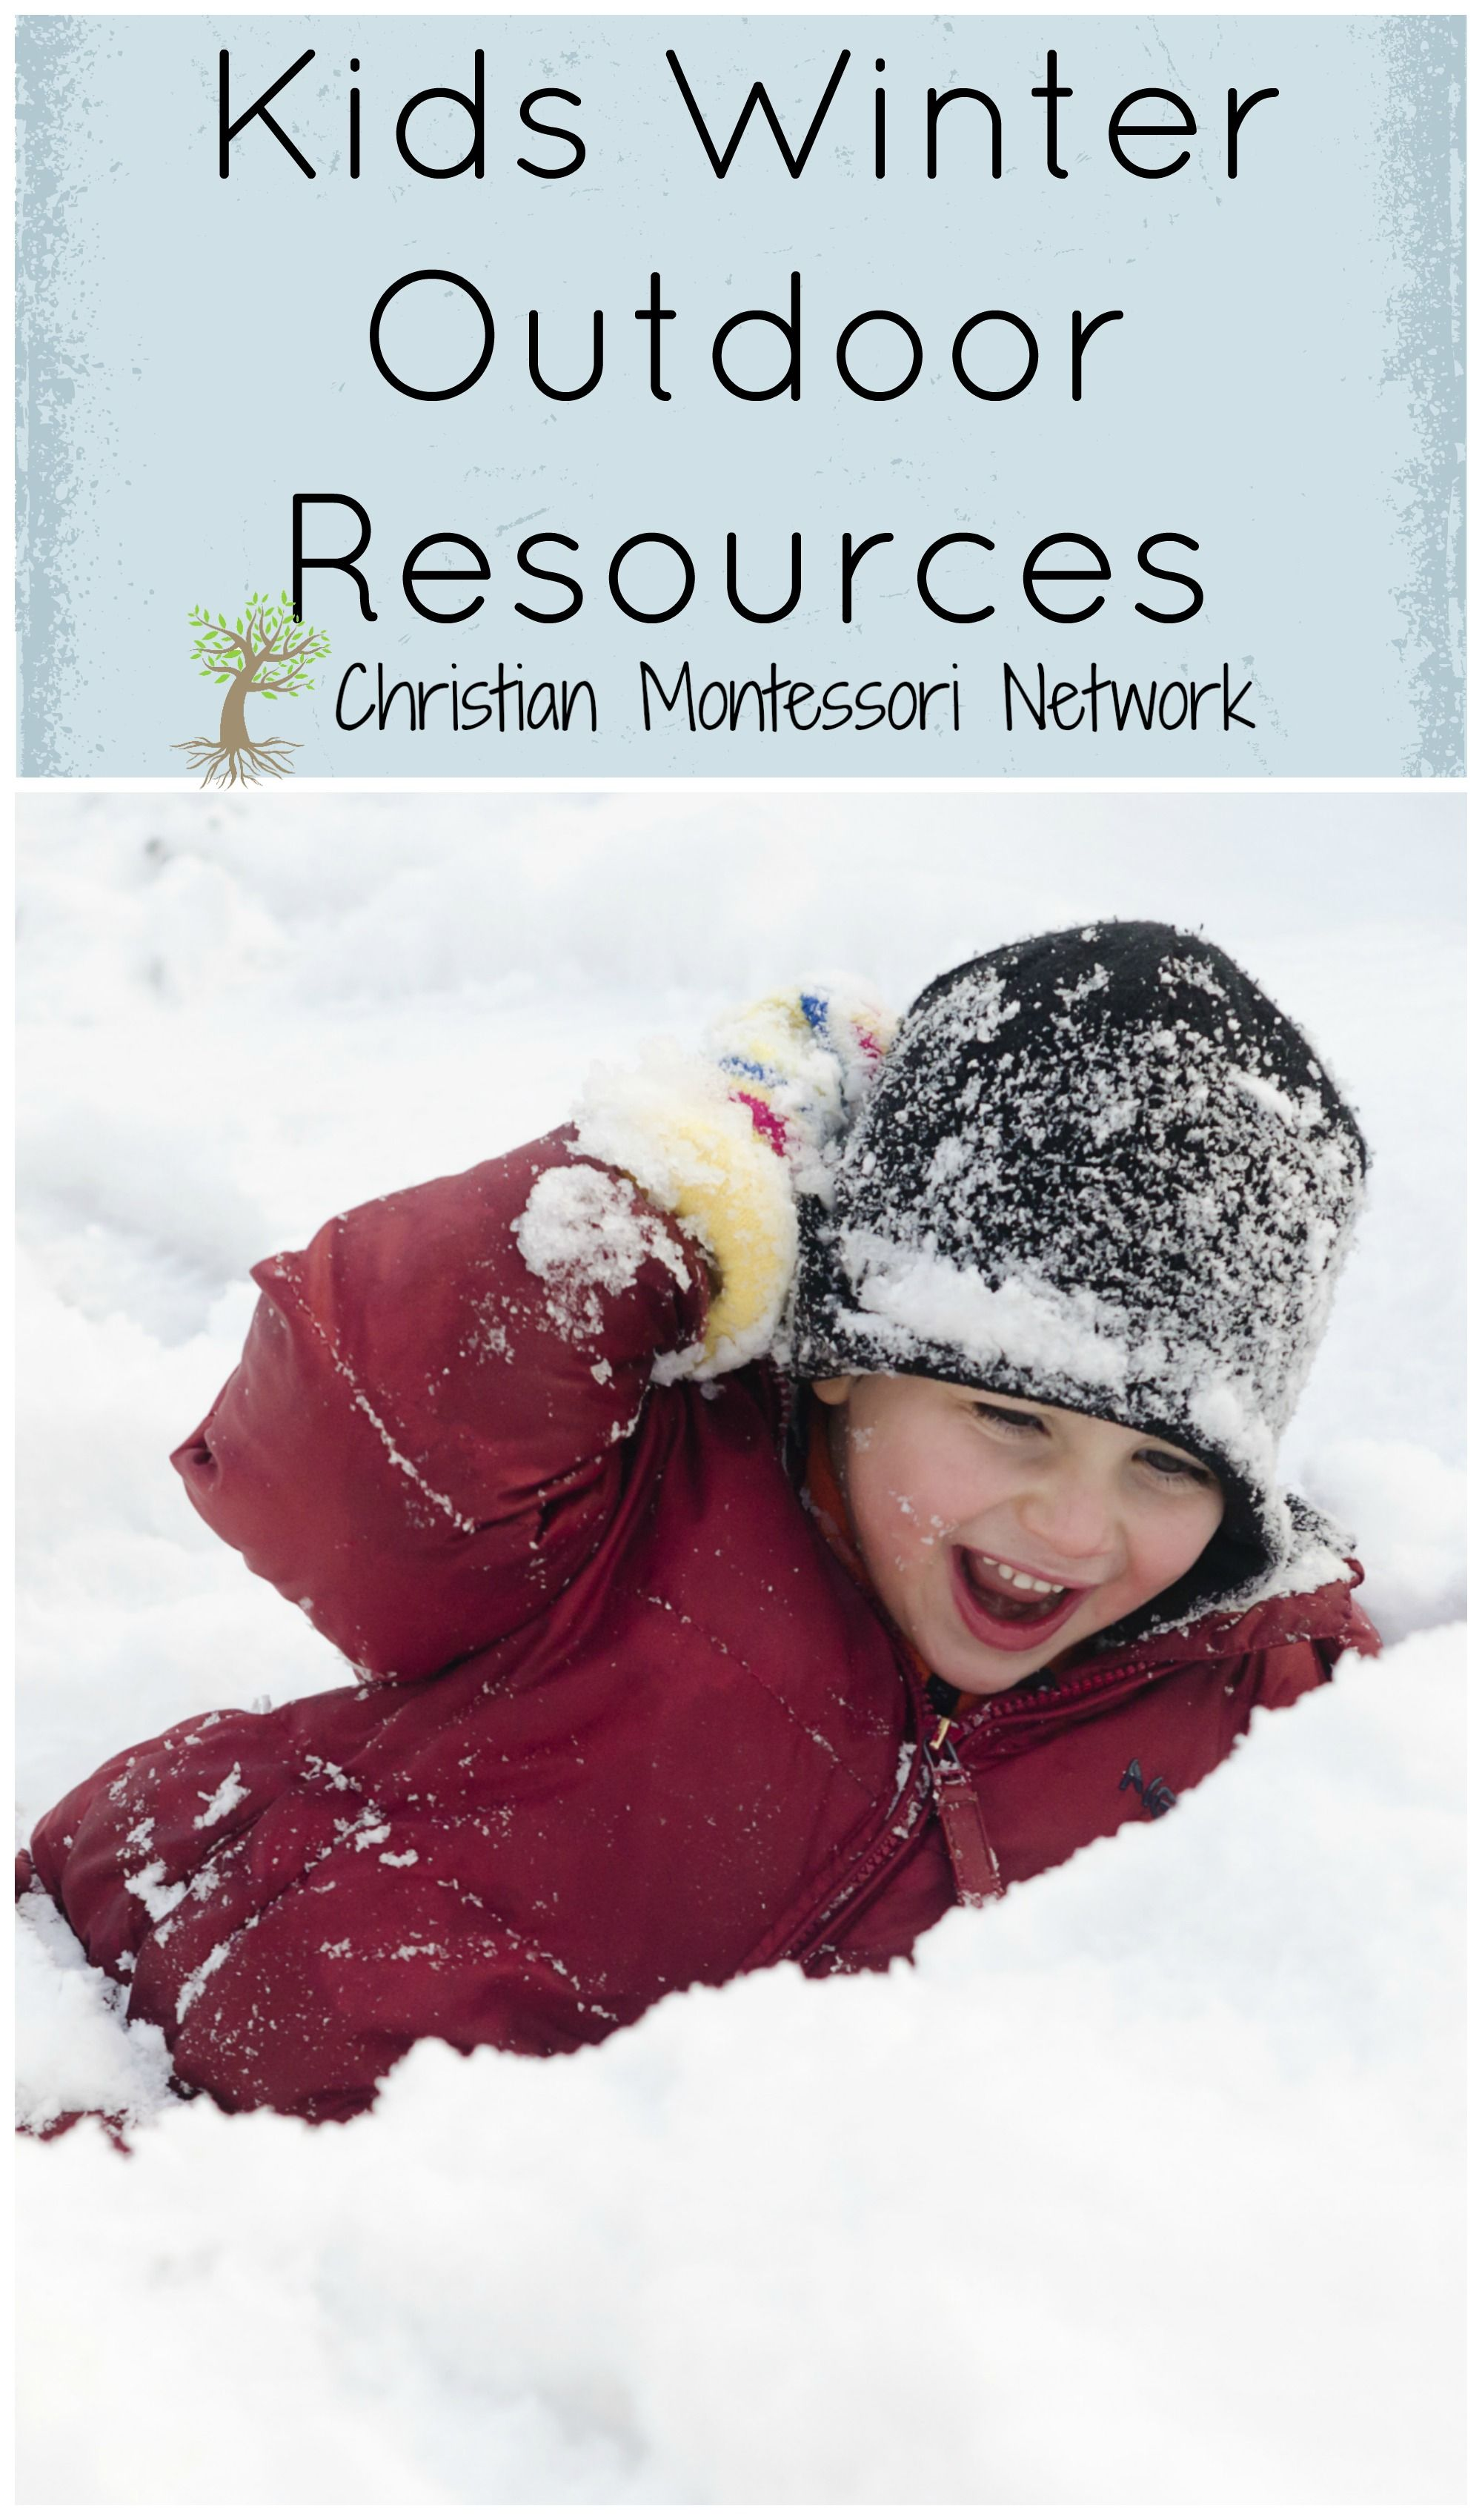 My son is disappointed it hasn't snowed yet, but that doesn't stop us from getting out and enjoying outside with these wonderful winter outdoor resources.